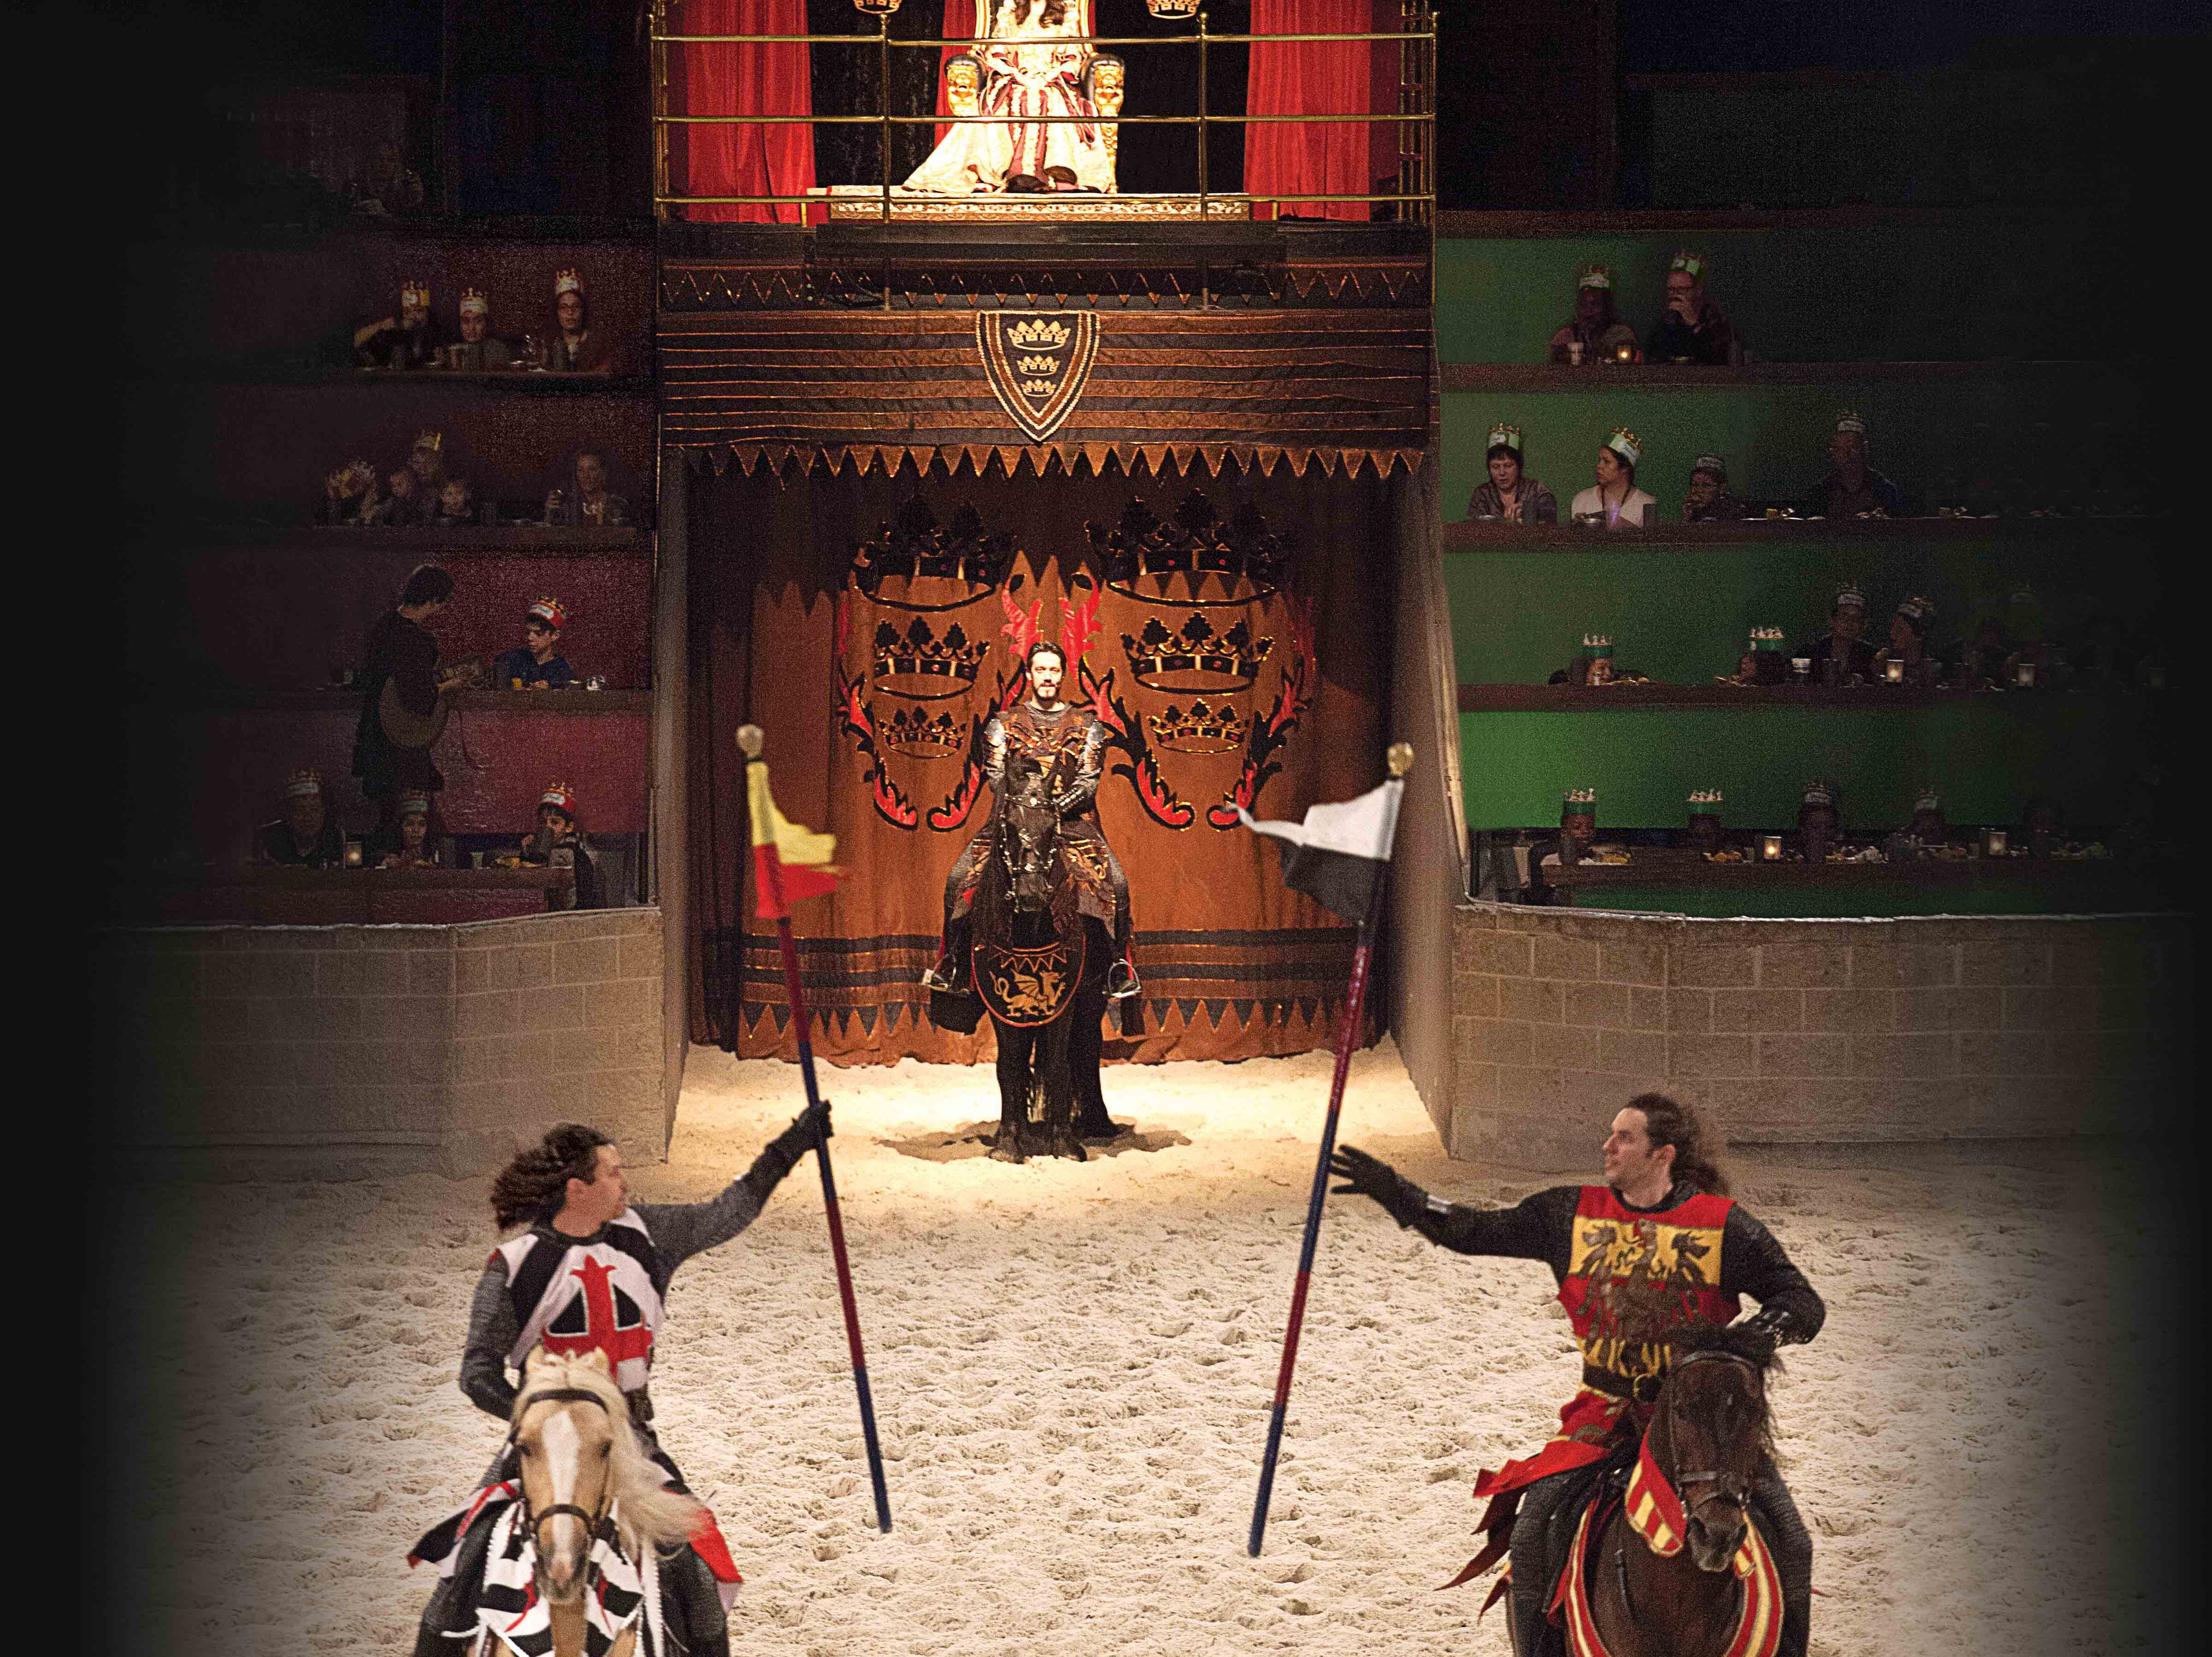 A performance at Medieval Times.